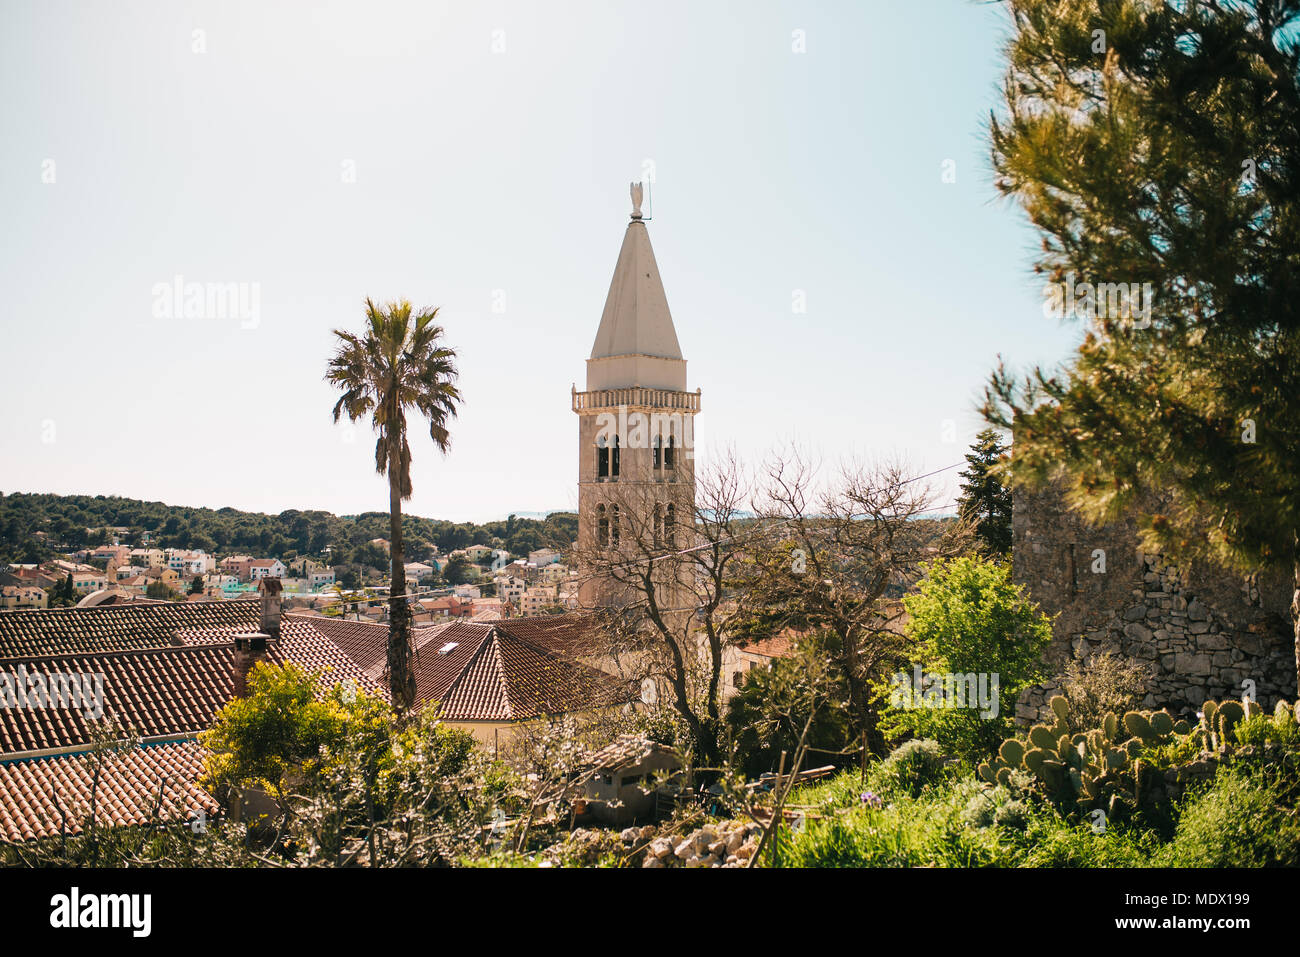 Church in Mali Losinj, Croatia - Stock Image